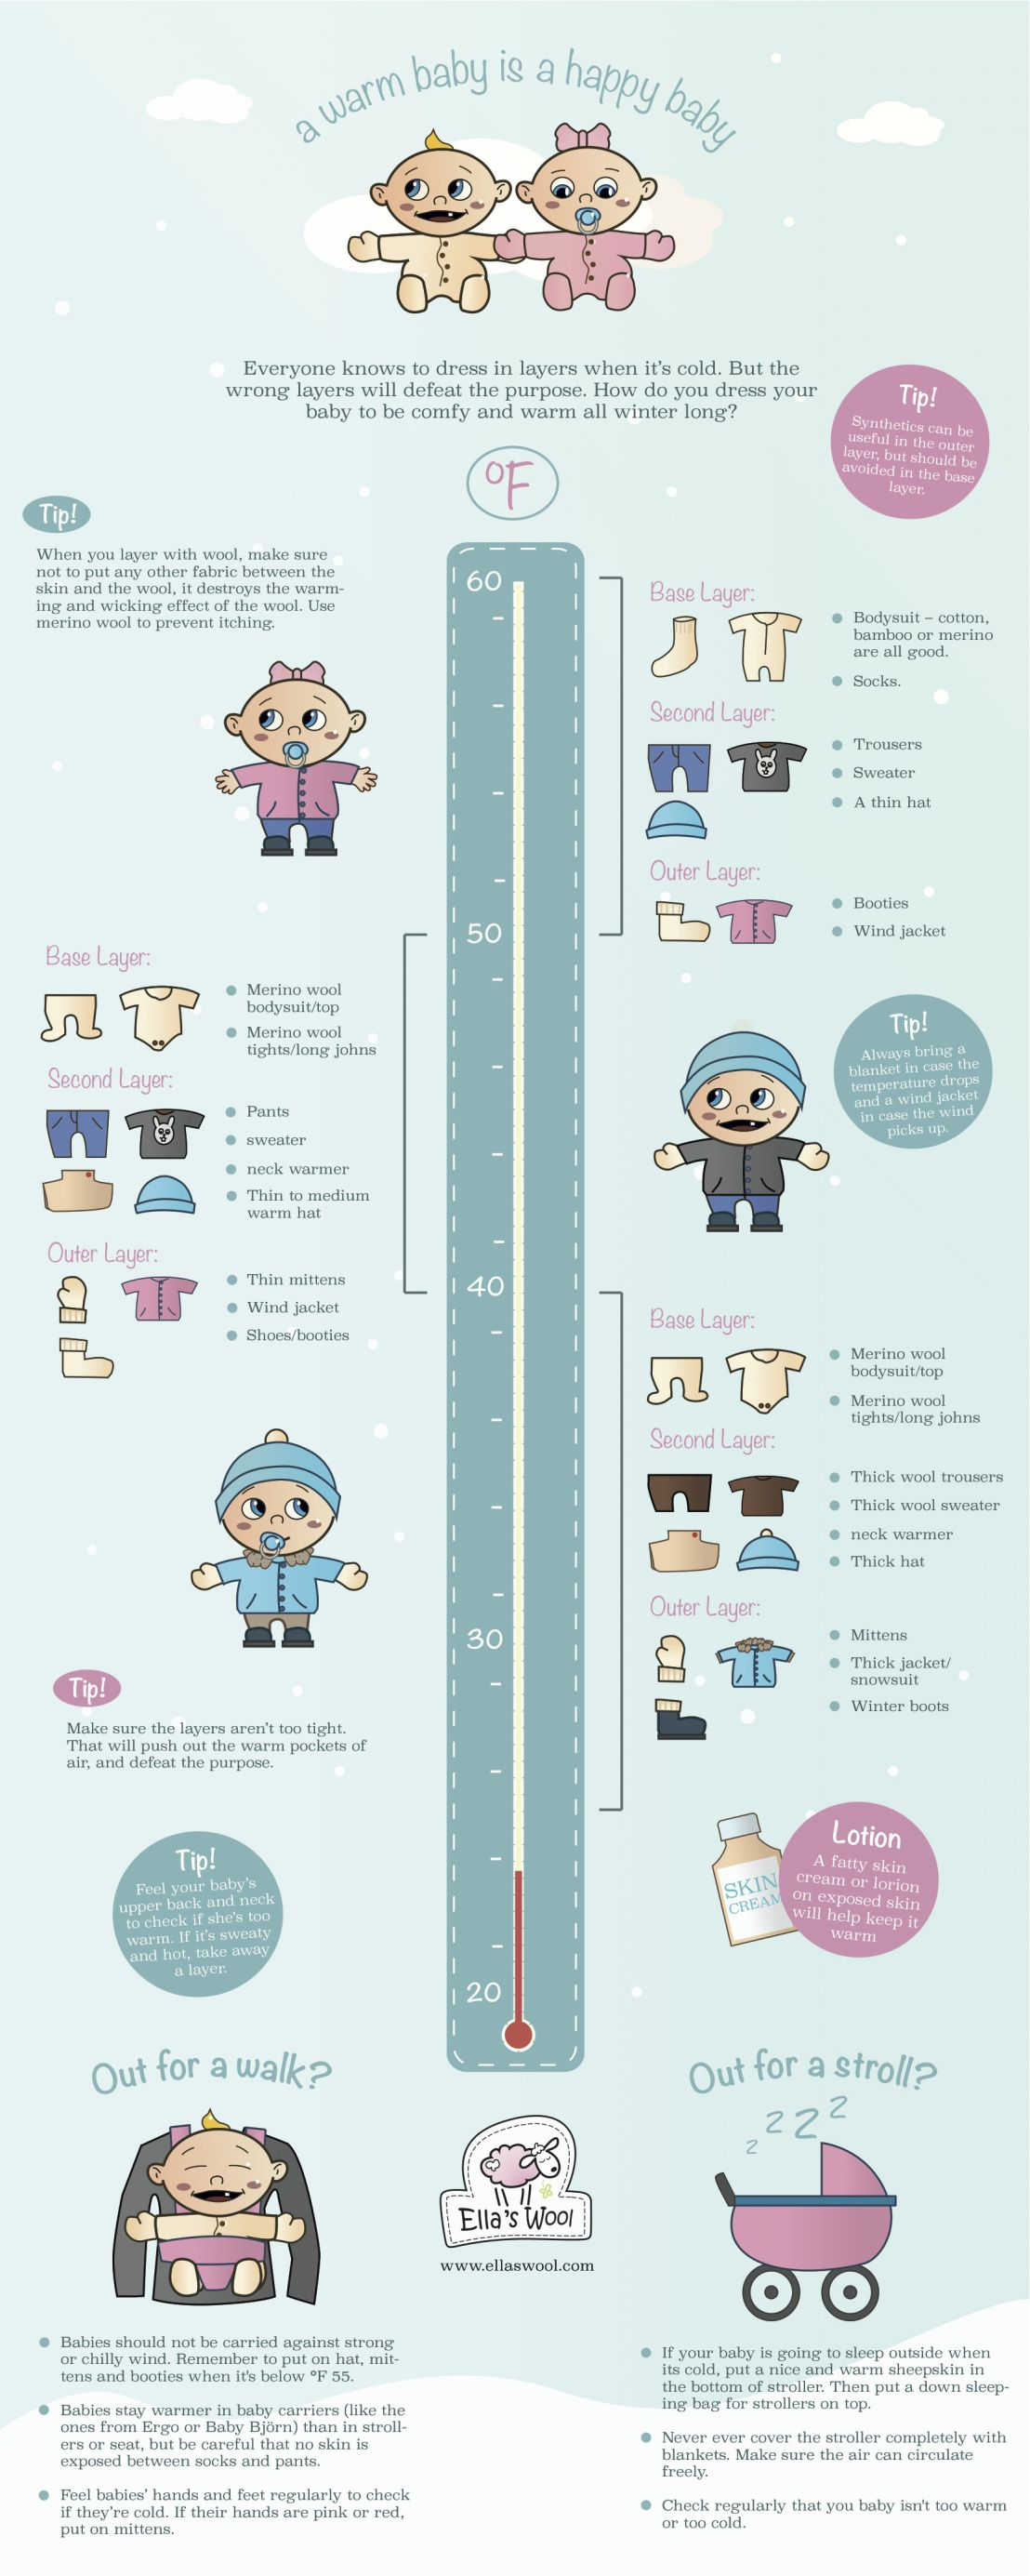 56790e9c5 INFOGRAPHIC  HOW TO DRESS A BABY IN COLD WEATHER